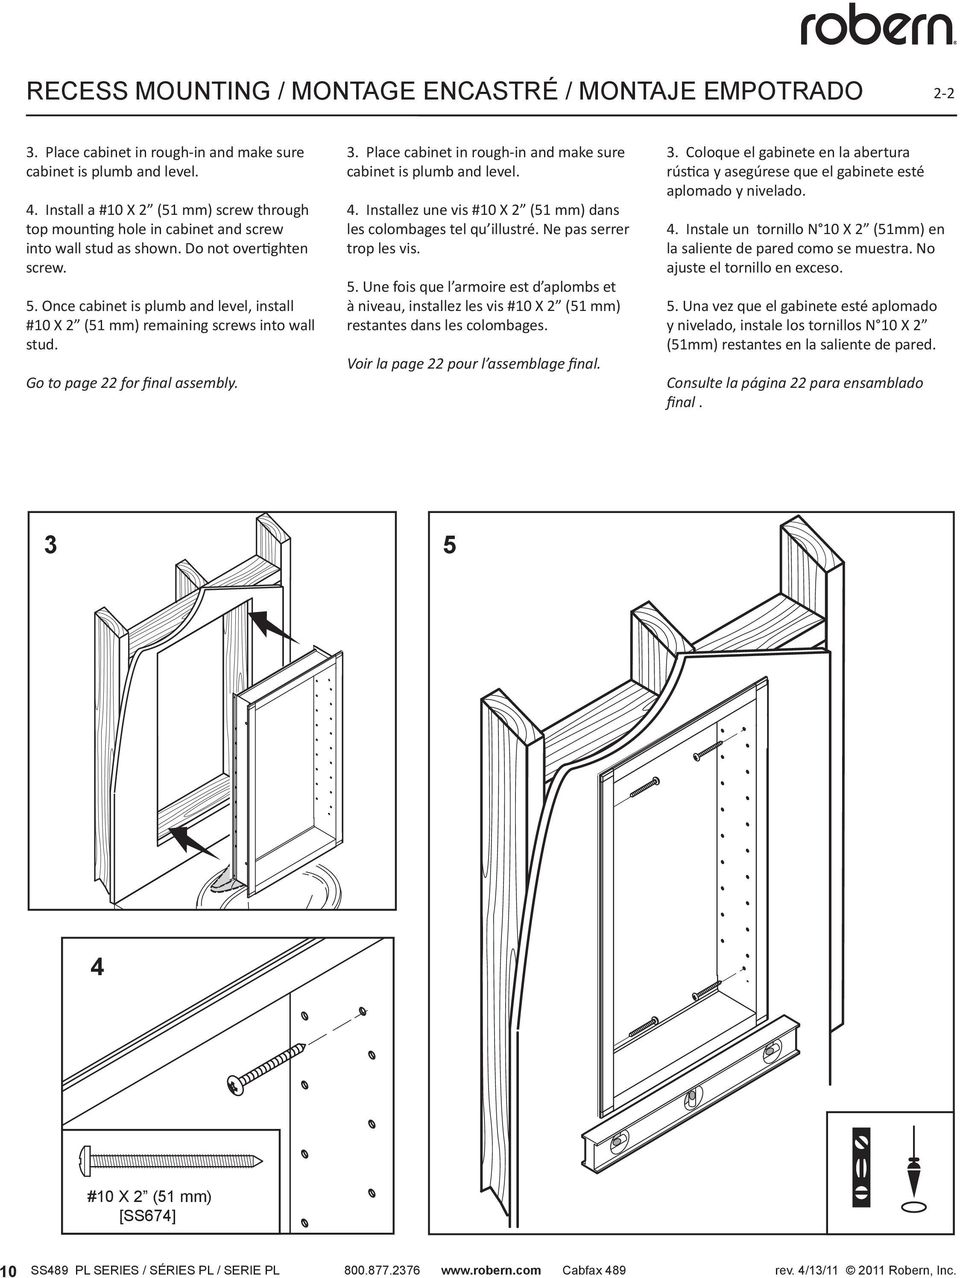 Once cabinet is plumb and level, install #10 X 2 (51 mm) remaining screws into wall stud. Go to page 22 for final assembly. 3. Place cabinet in rough-in and make sure cabinet is plumb and level. 4.